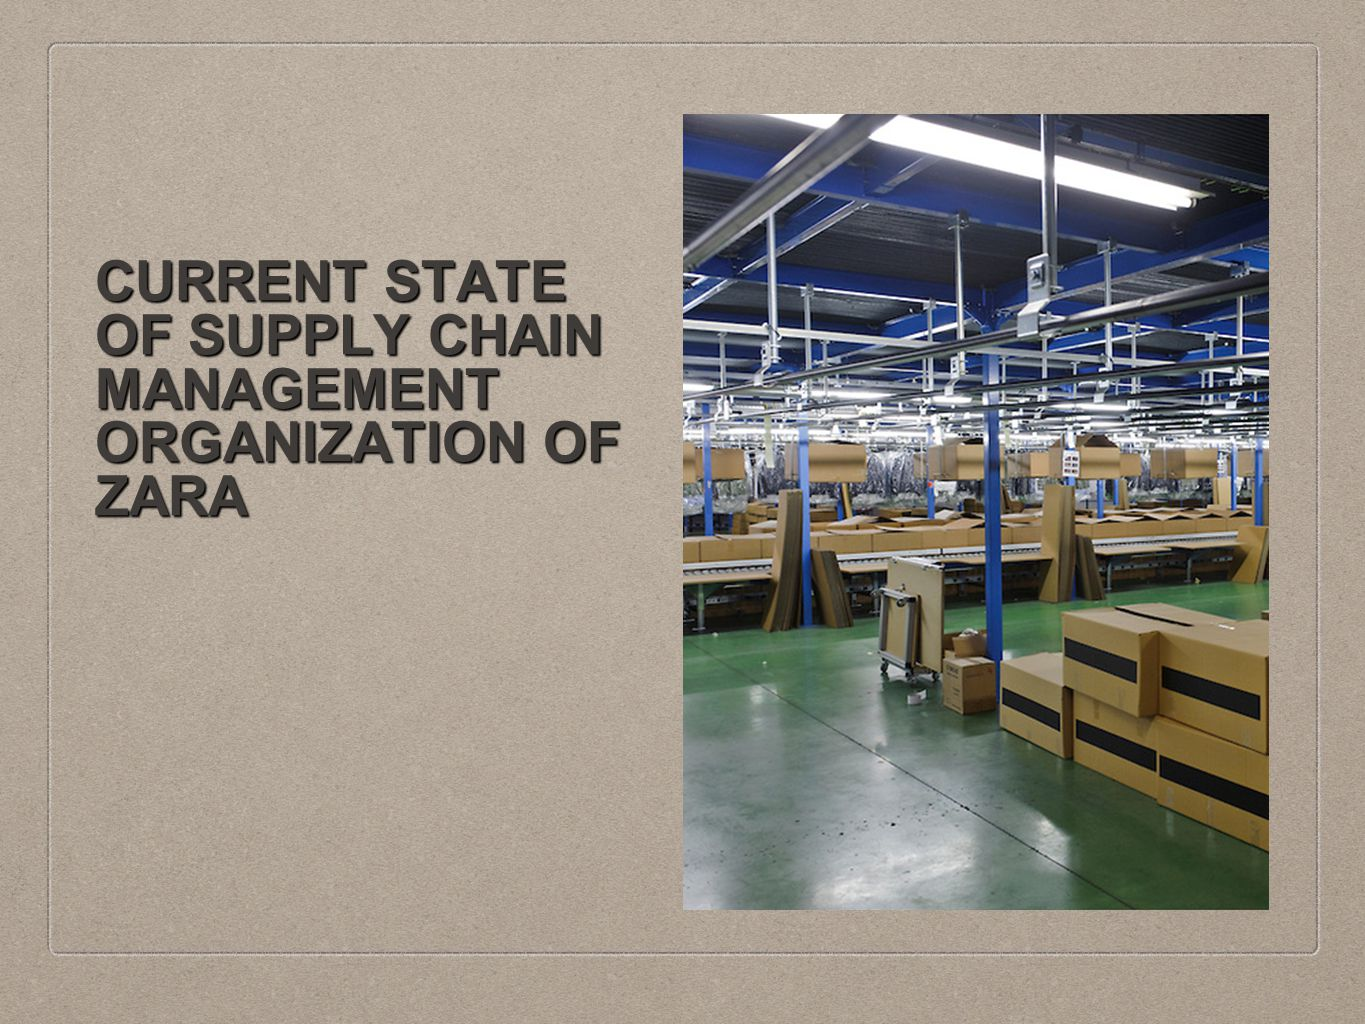 marketing supply chain management and zara Inditex-zara's super-responsive supply chain reduces 'bullwhip effect', order-to-delivery lead time to stores, ensures lean inventory and high level of responsiveness to adapt and deliver products to stores with latest fashion trends and customer feedbacks at a rapid speed.